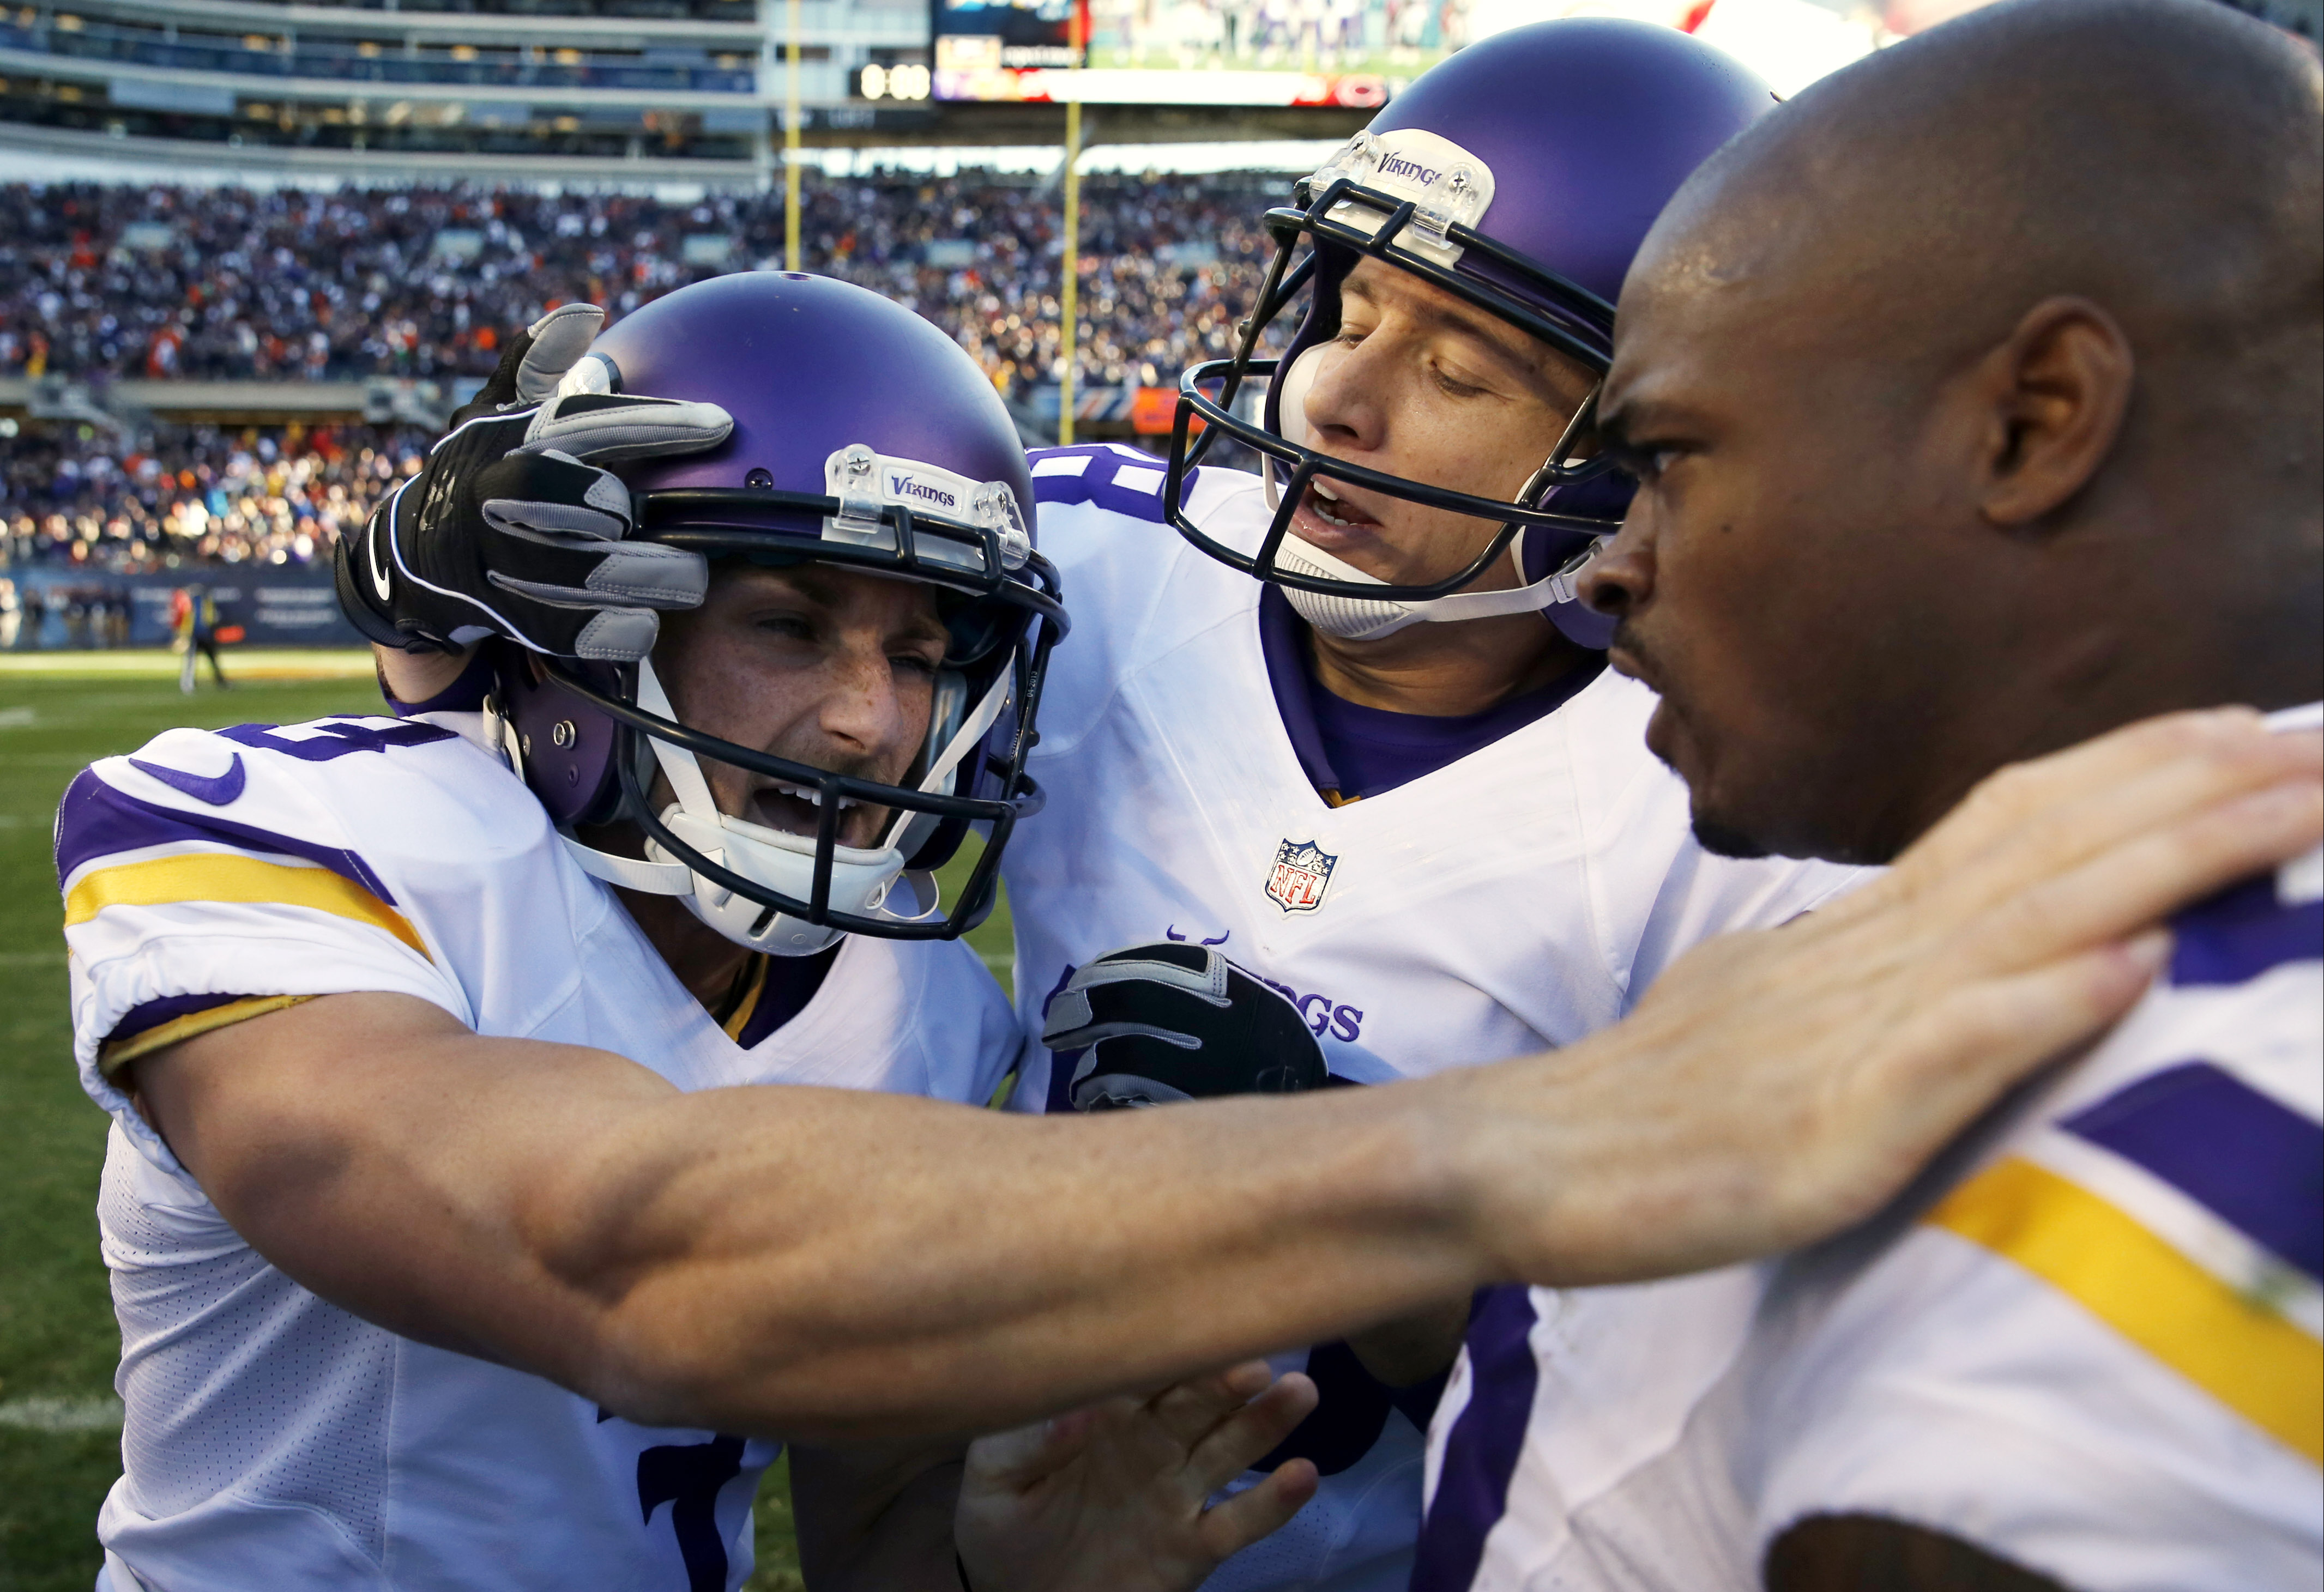 Minnesota Vikings kicker Blair Walsh (3) celebrates his game winning field goal with Jeff Locke, center, and Adrian Peterson (28) during the second half of an NFL football game, Sunday, Nov. 1, 2015, in Chicago. The Vikings won 23-20. (AP Photo/Charles Re